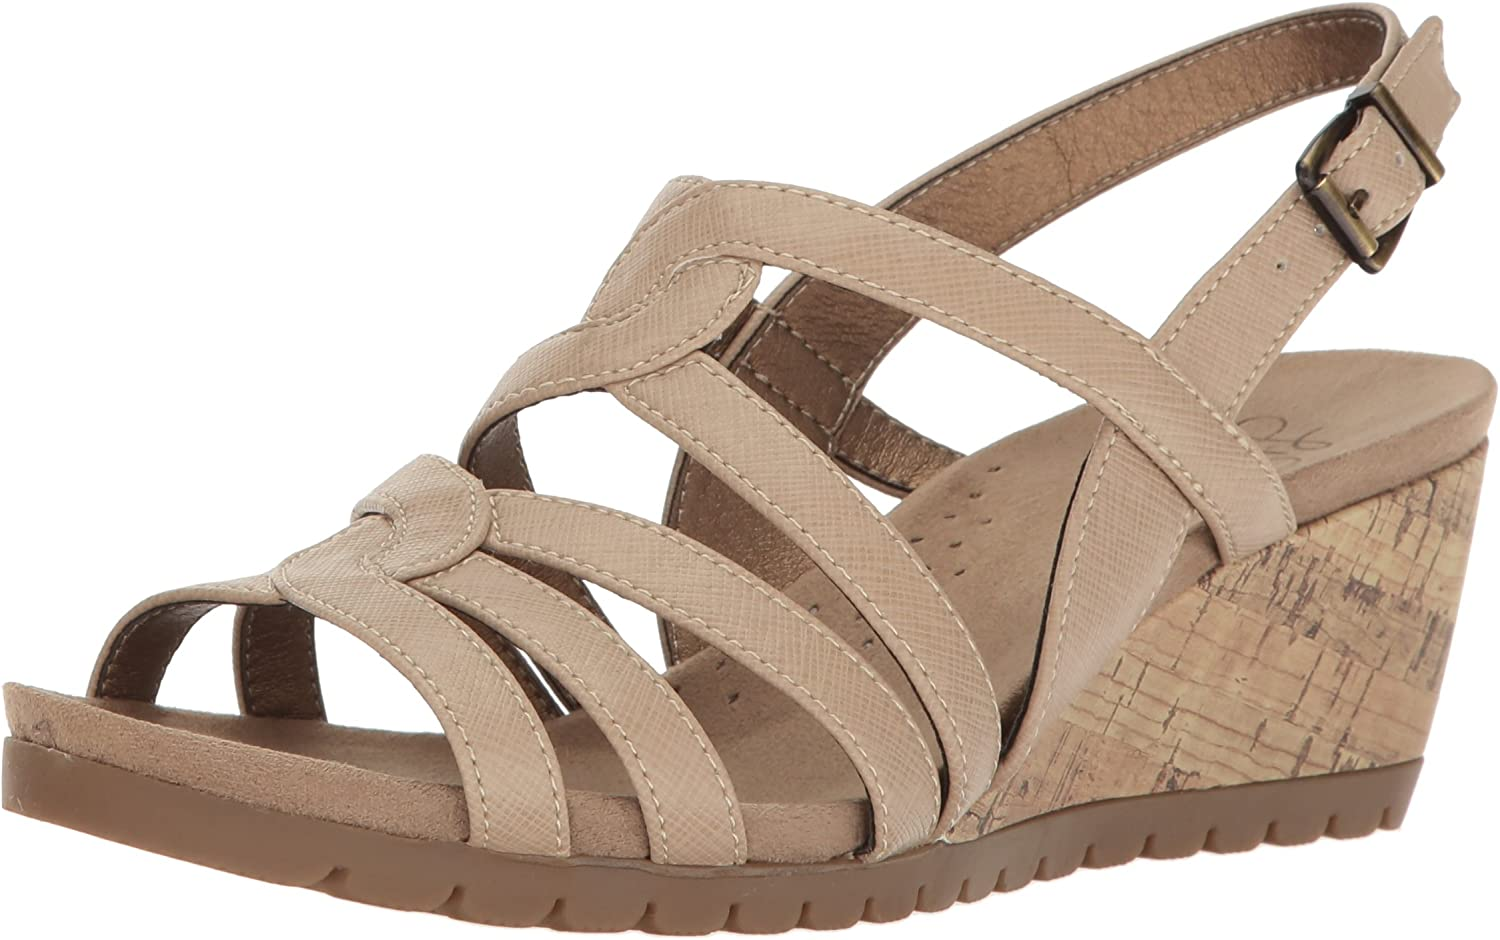 LifeStride Woherren Novak Wedge Sandal, Tender Taupe, 11 11 11 W US  021d86